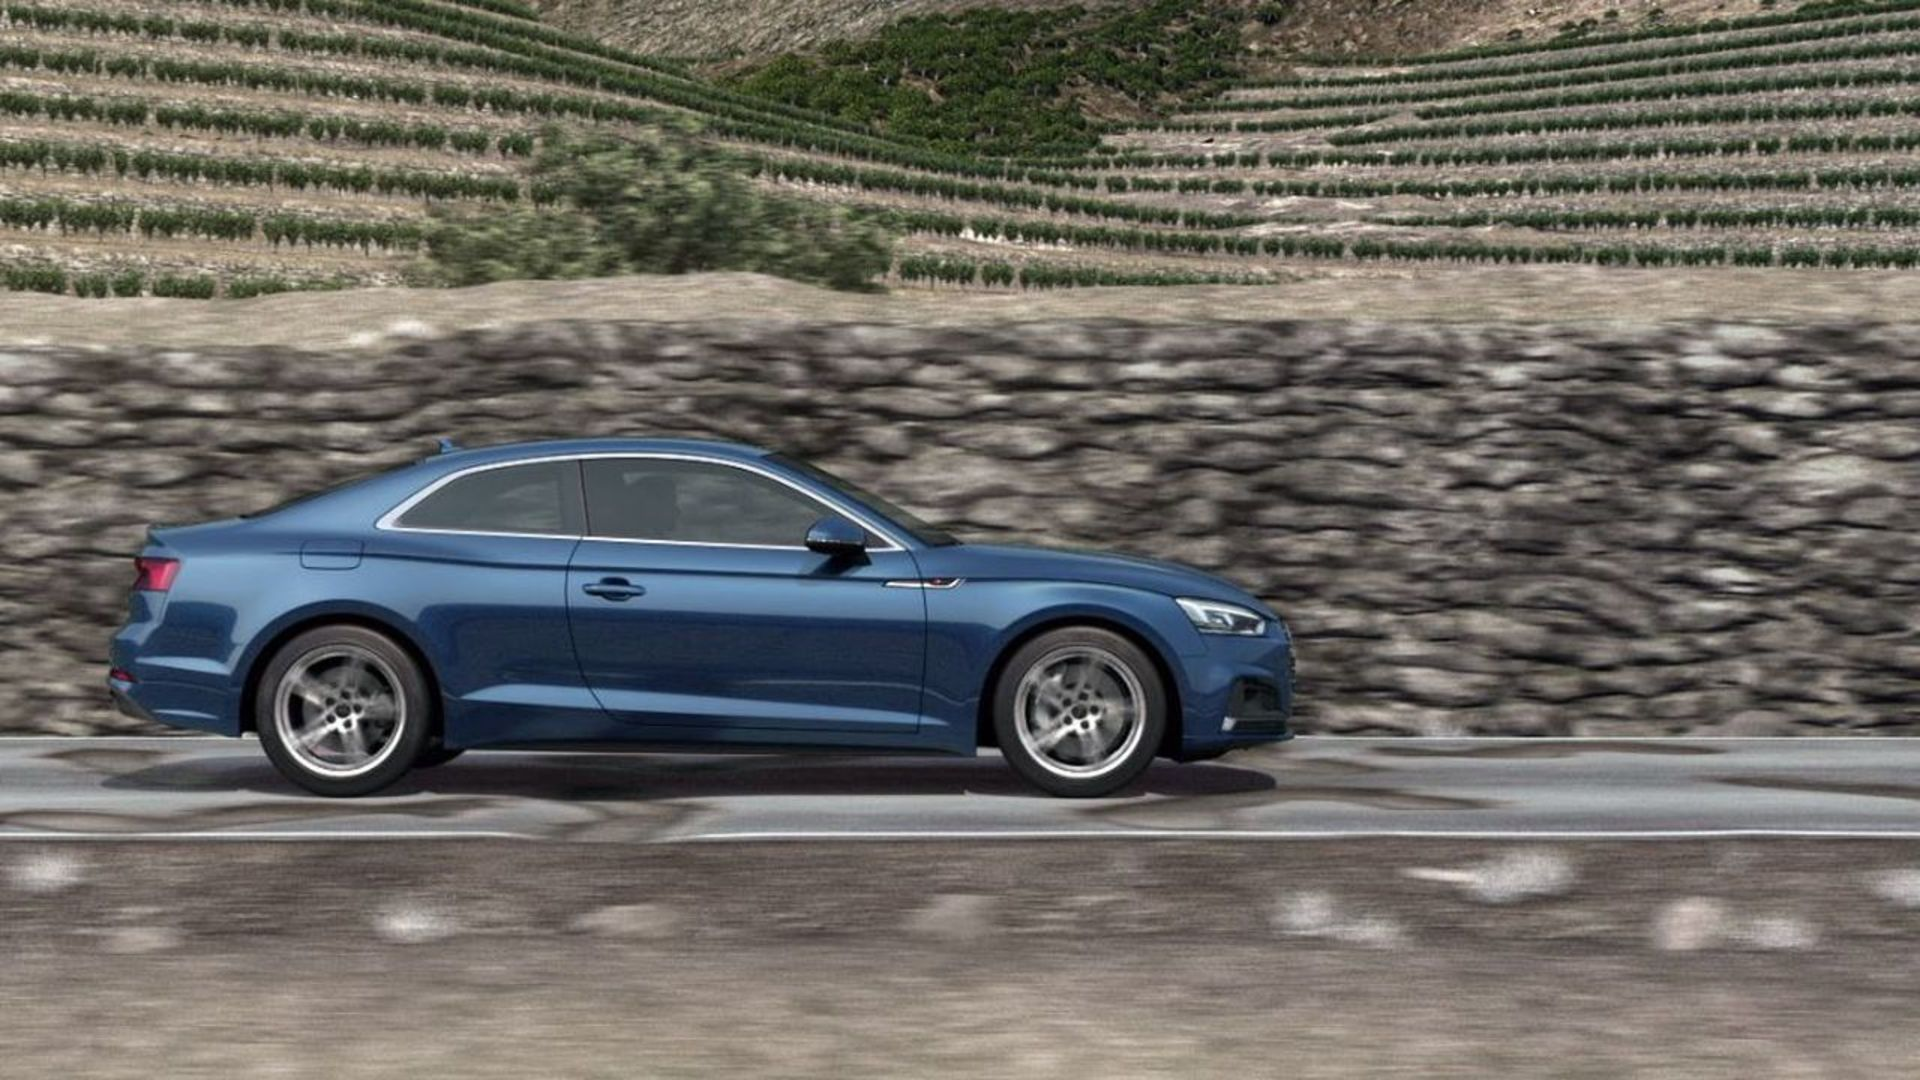 Audi A5 Coupé – Animation Suspension with damper control